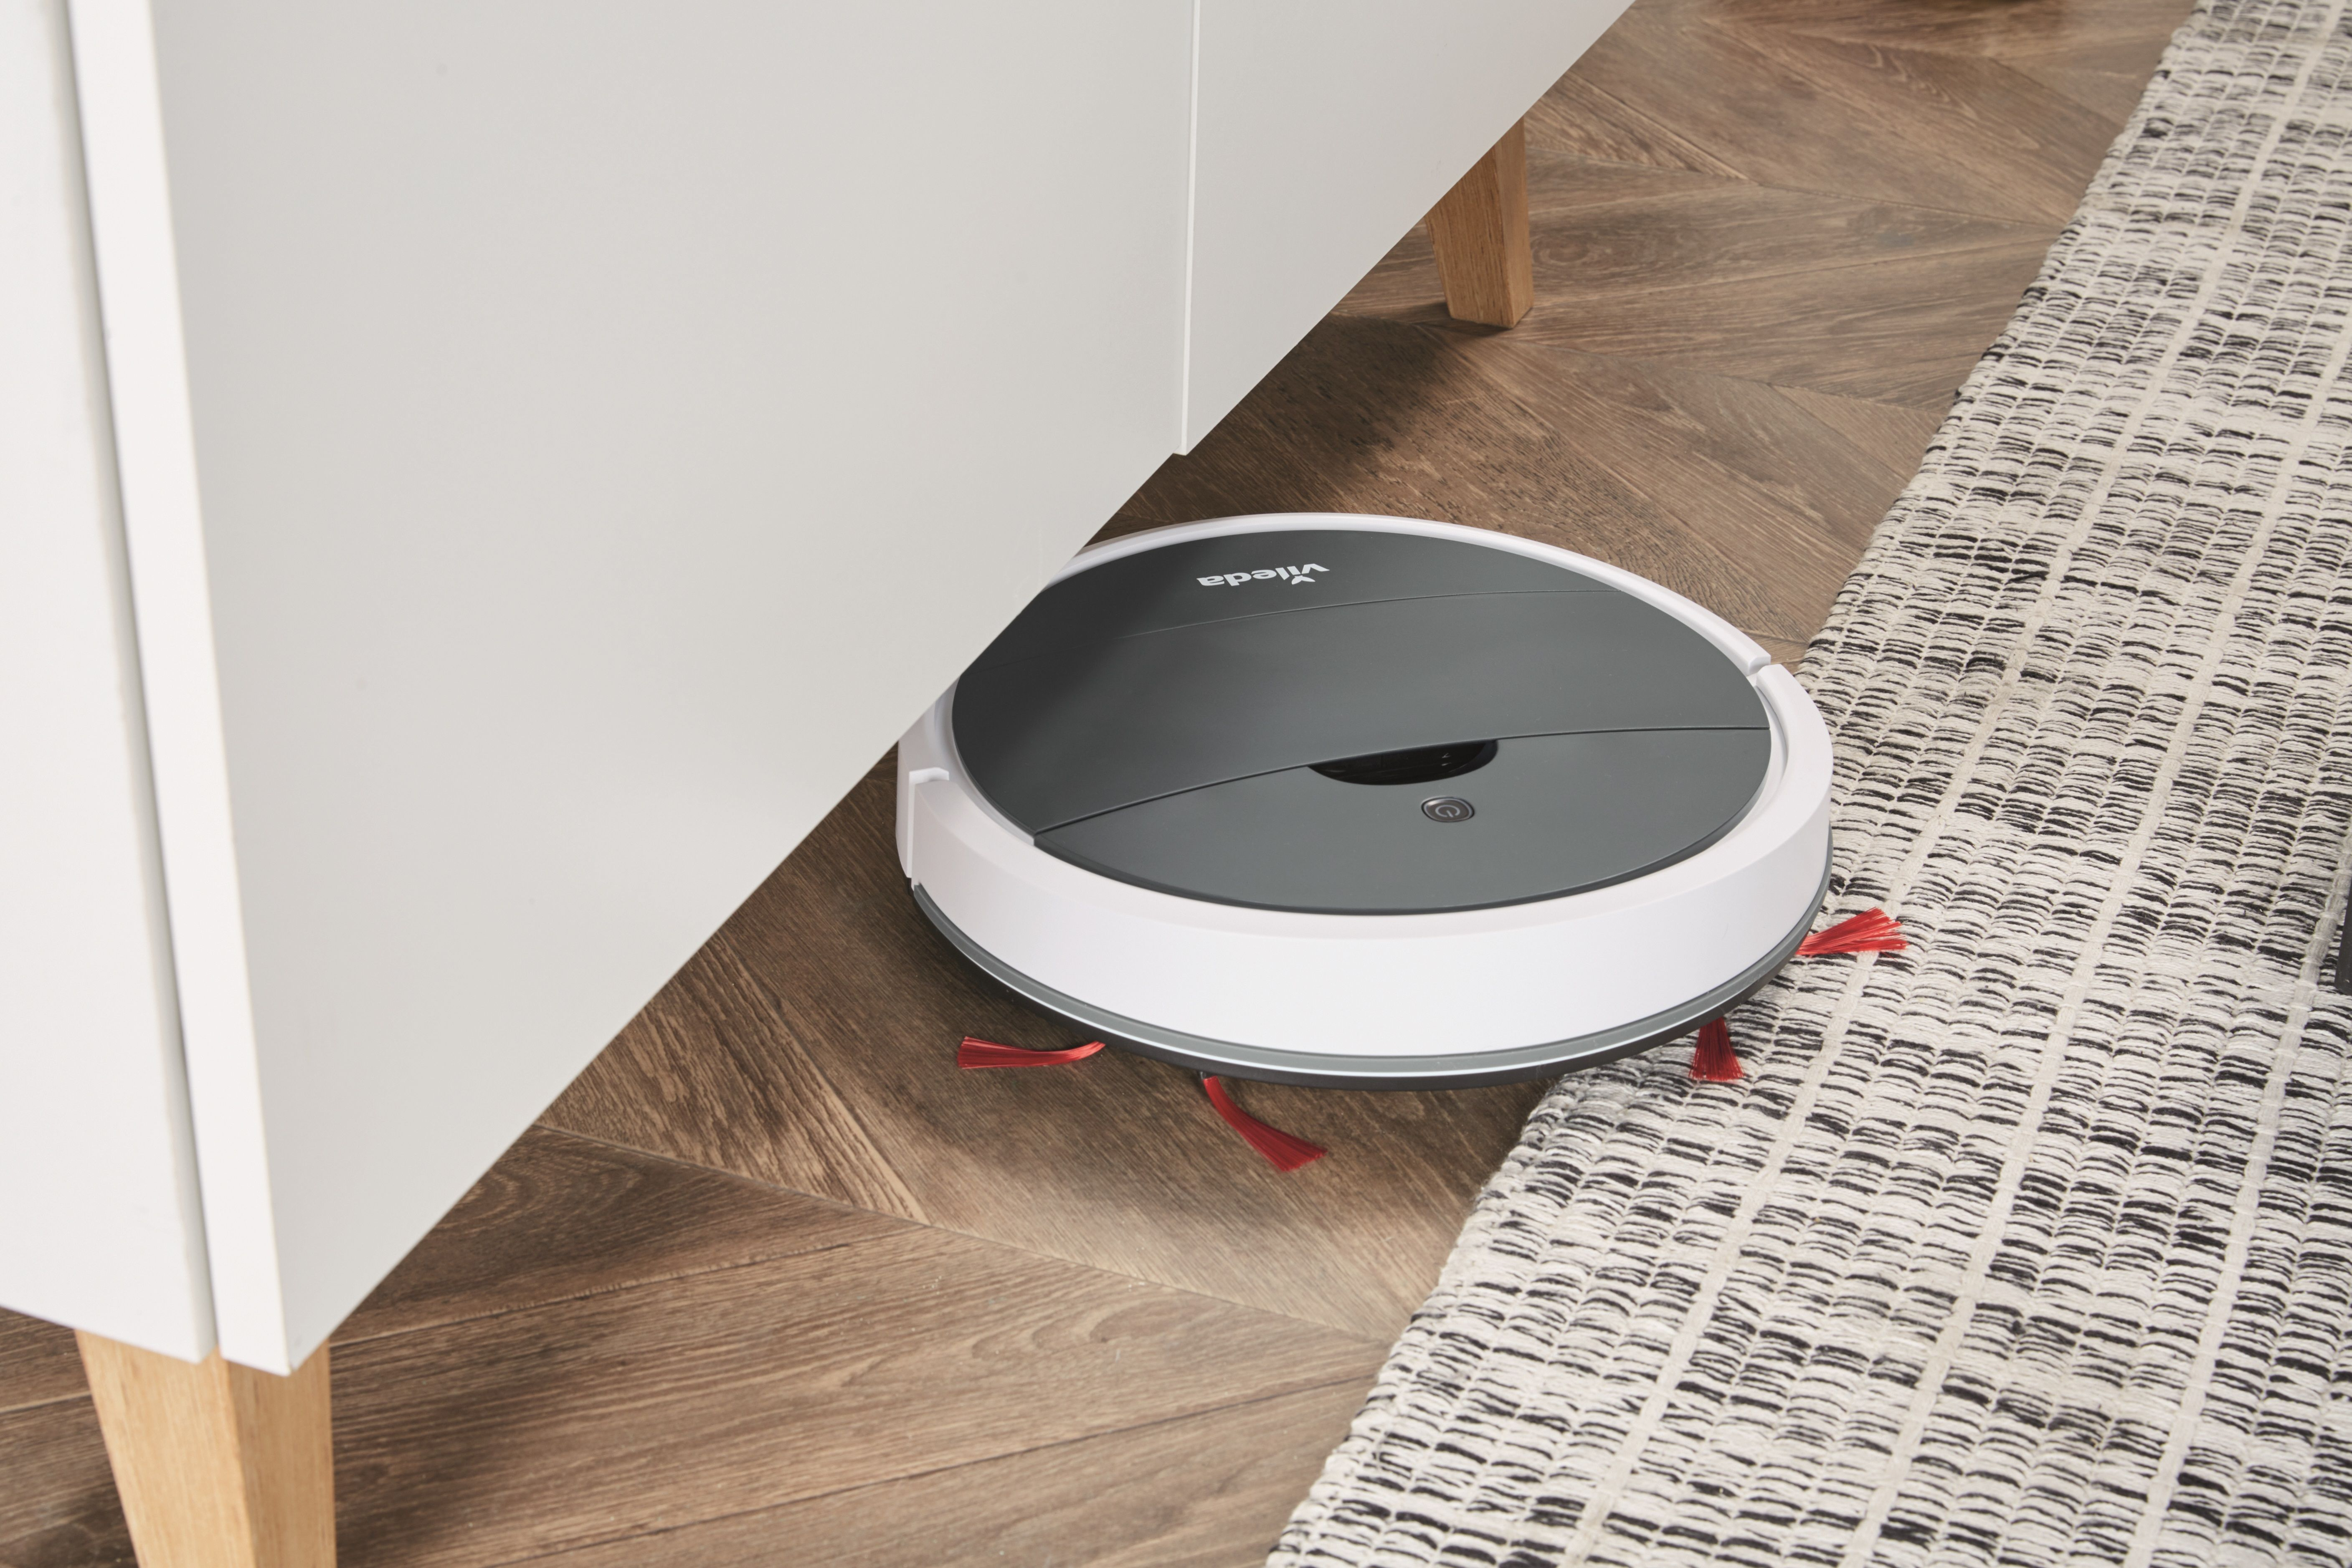 Lidl is selling a high tech robot vacuum cleaner for less than £80